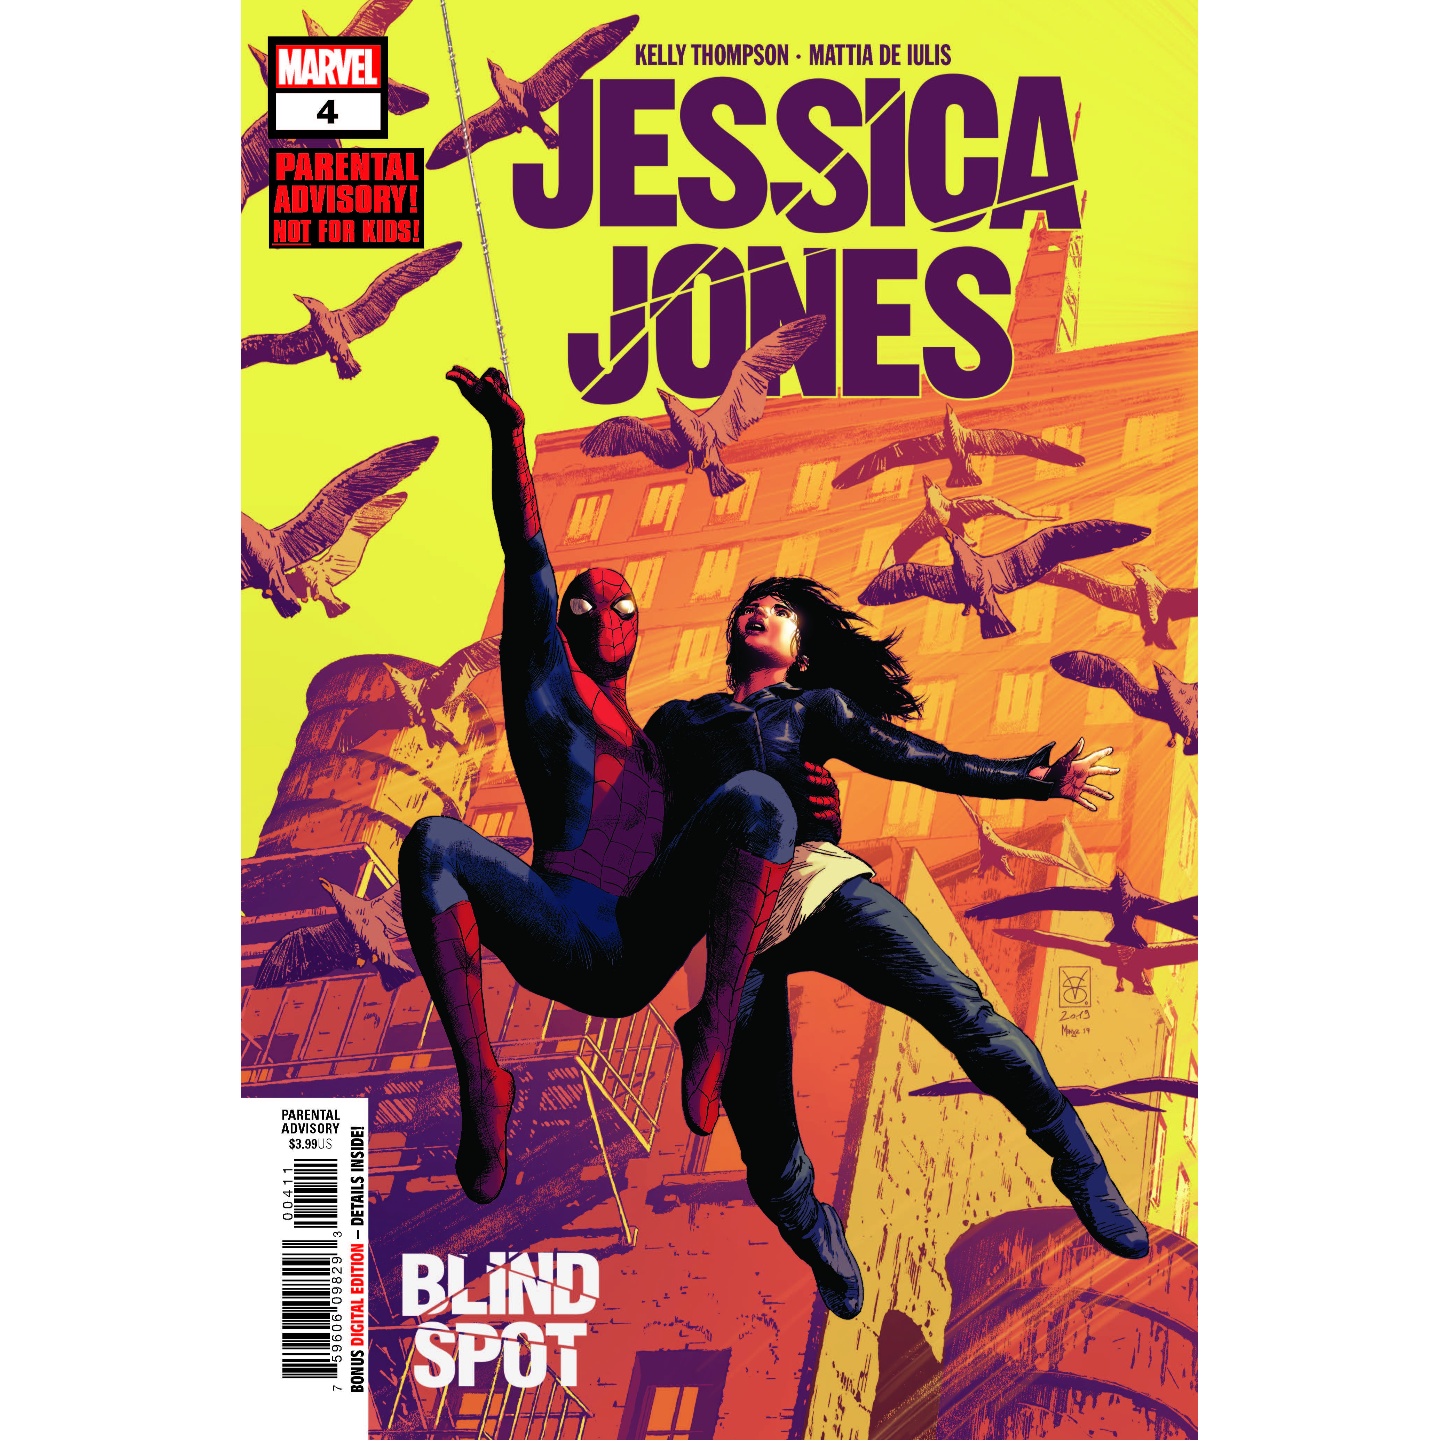 JESSICA JONES BLIND SPOT 4 OF 6